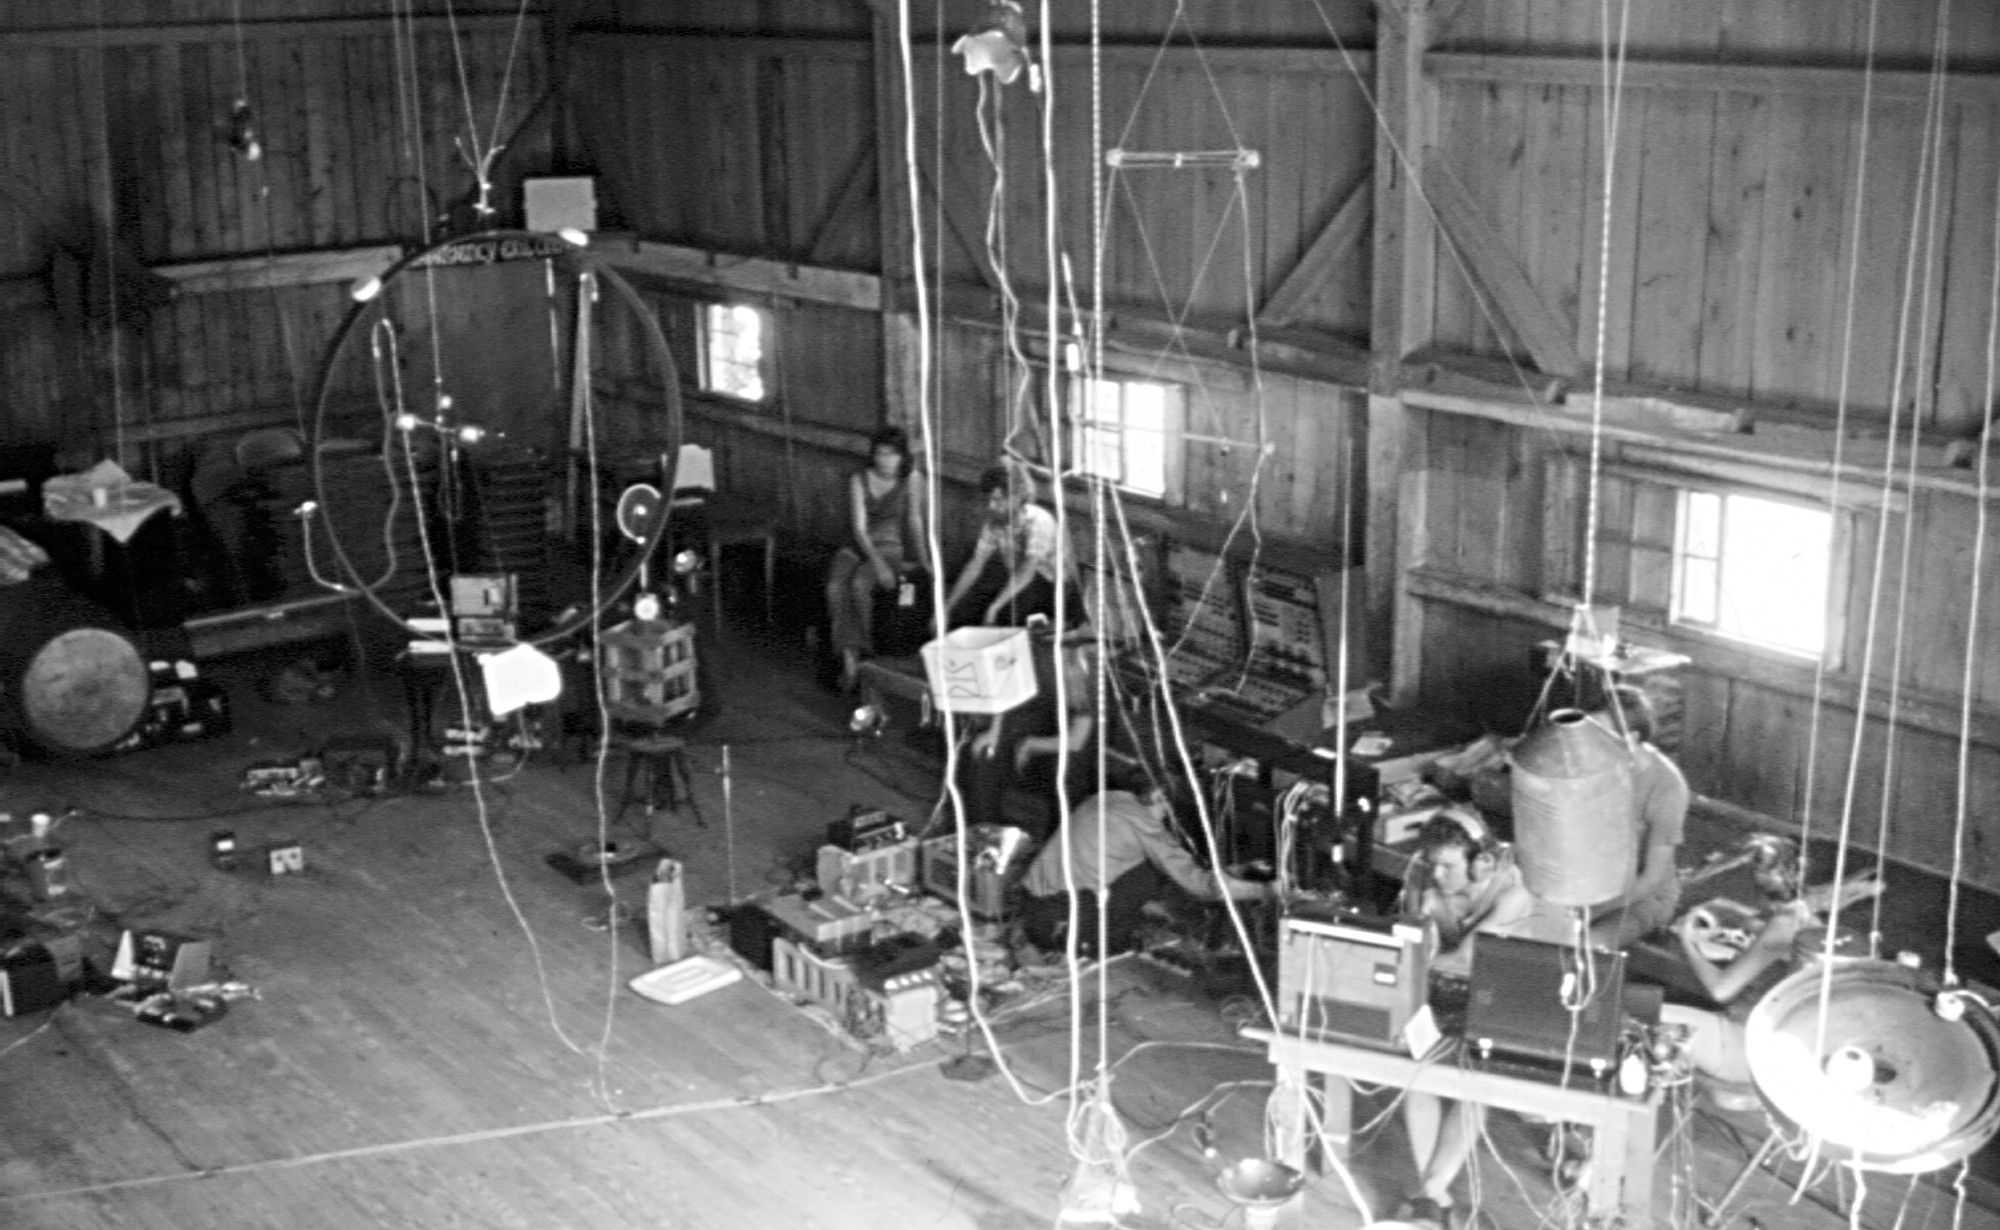 Preparation for Rainforest IV at New Music in New Hampshire, July 1973